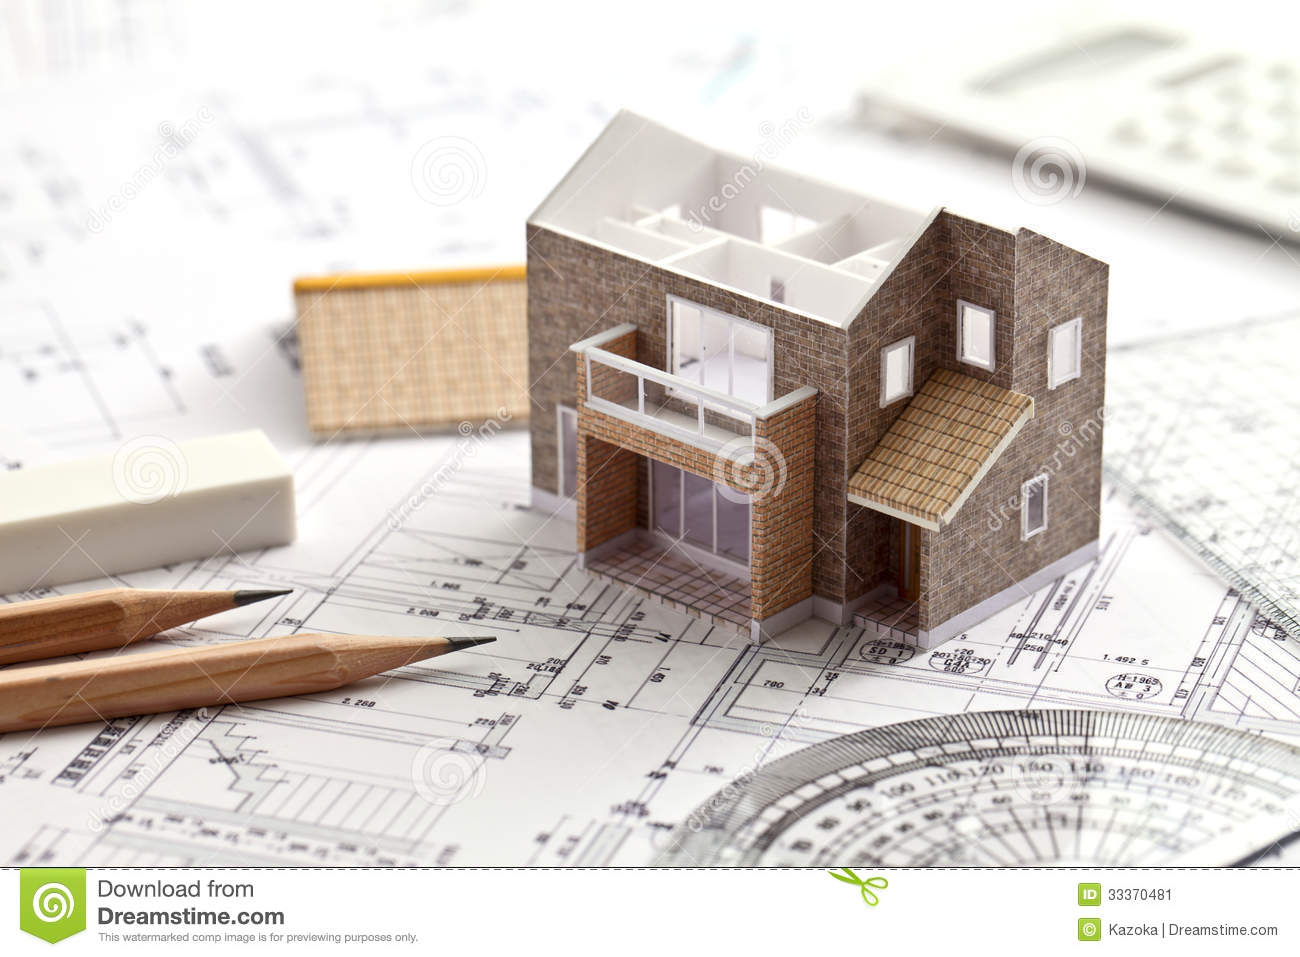 Download House, Design, Drawing Stock Image. Image Of Object, Paper    33370481